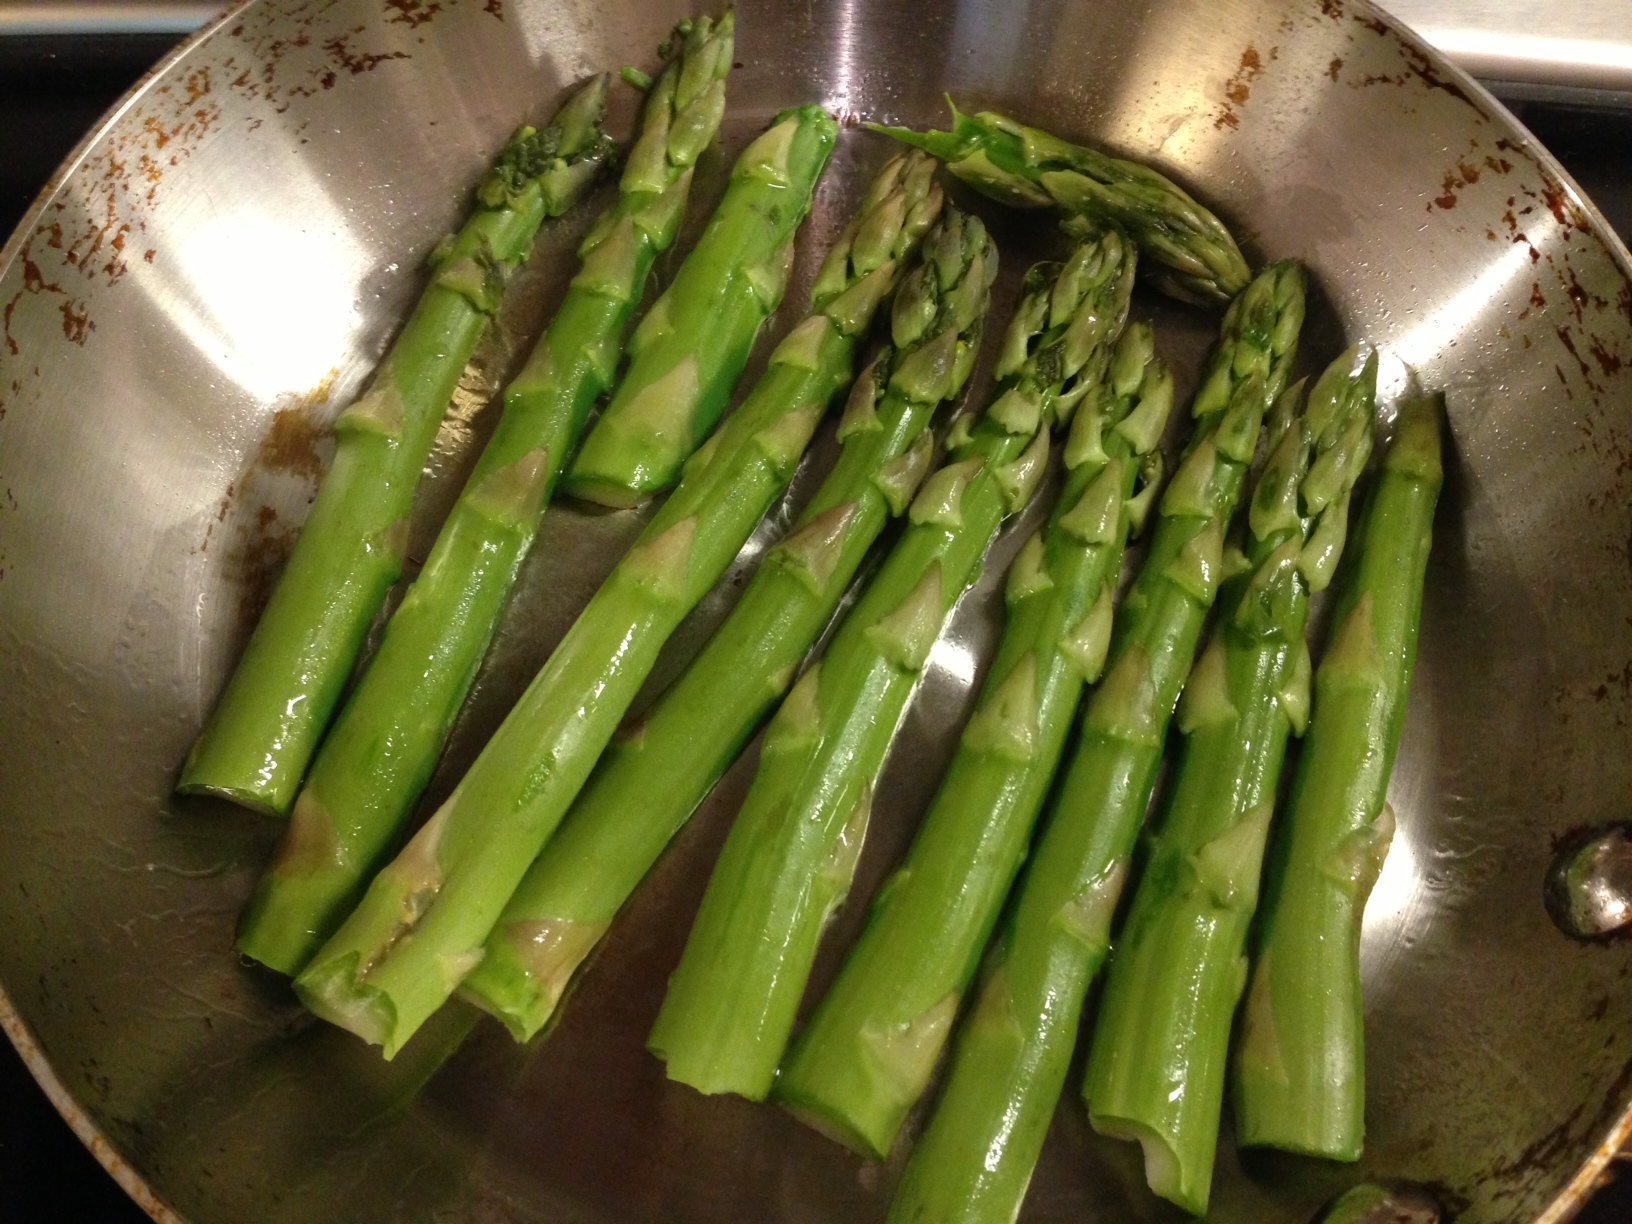 2 A Tbsp Of Olive Oil In The Pan, Spread It Around, Then Place  The Asparagus In Flat Side Down 3 Let The Asparagus Cook Without Touching  It